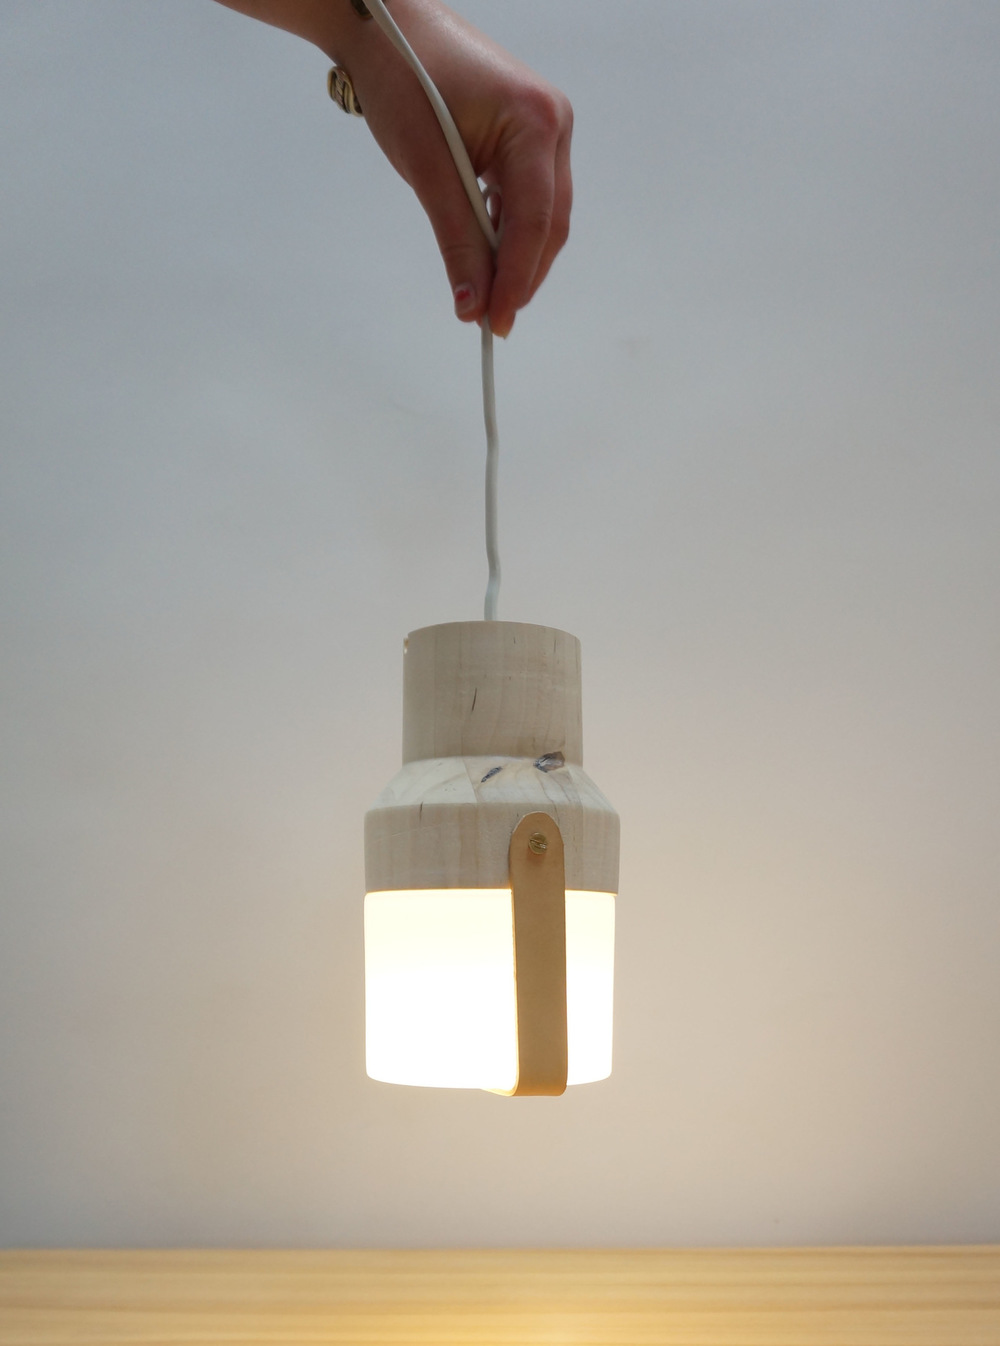 Dackelid Form - The light can be placed in window, on a table or it can hang from the ceiling